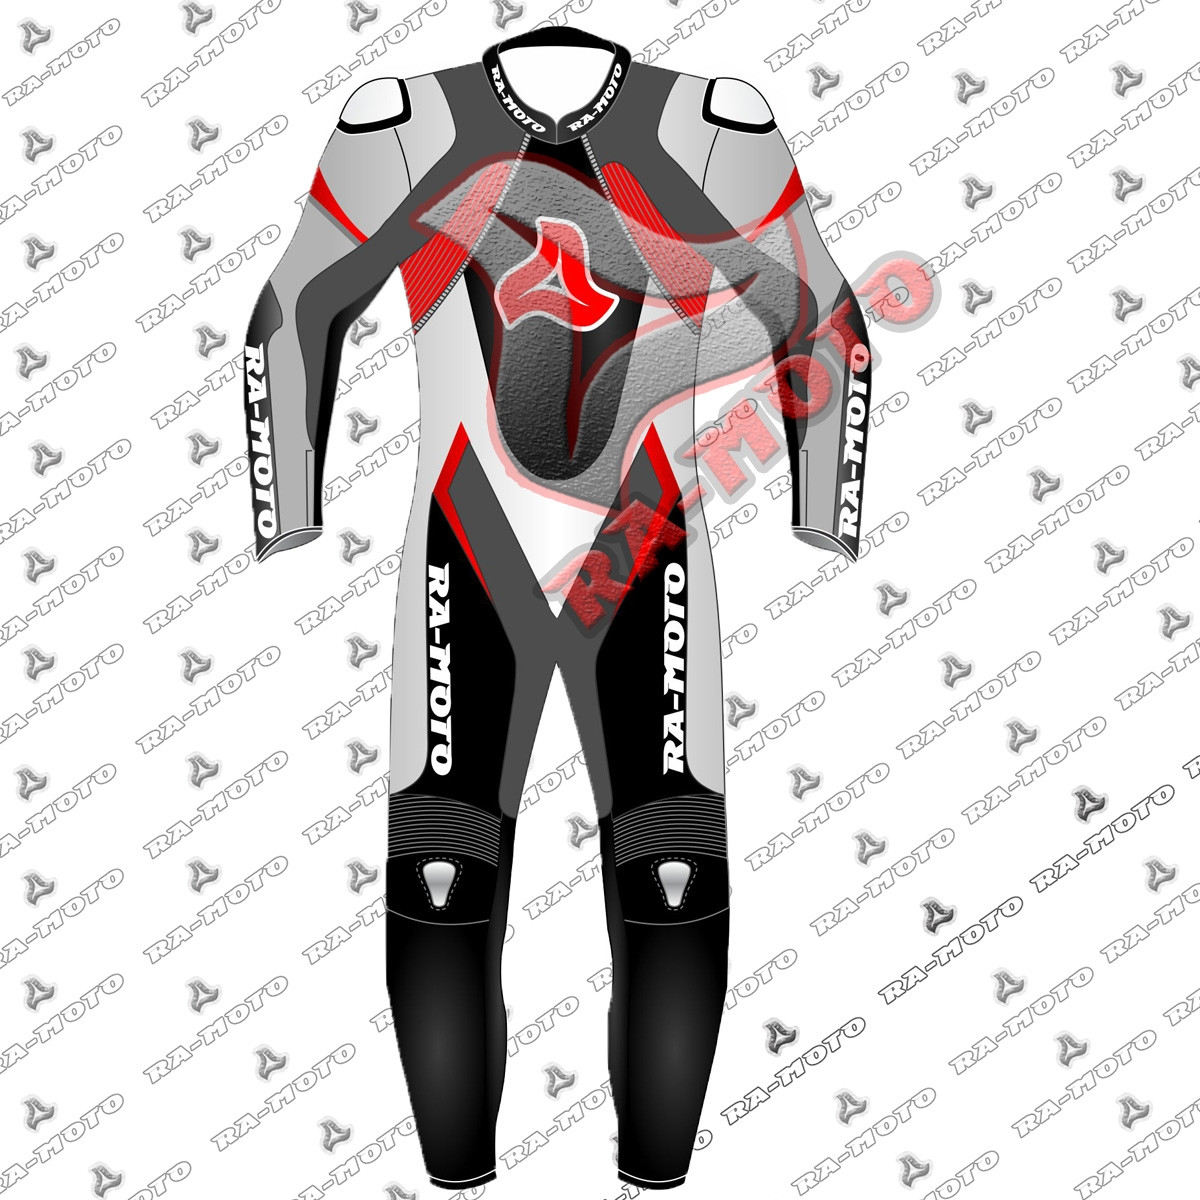 RA-15292 RBS SuperMoto leather racing suit